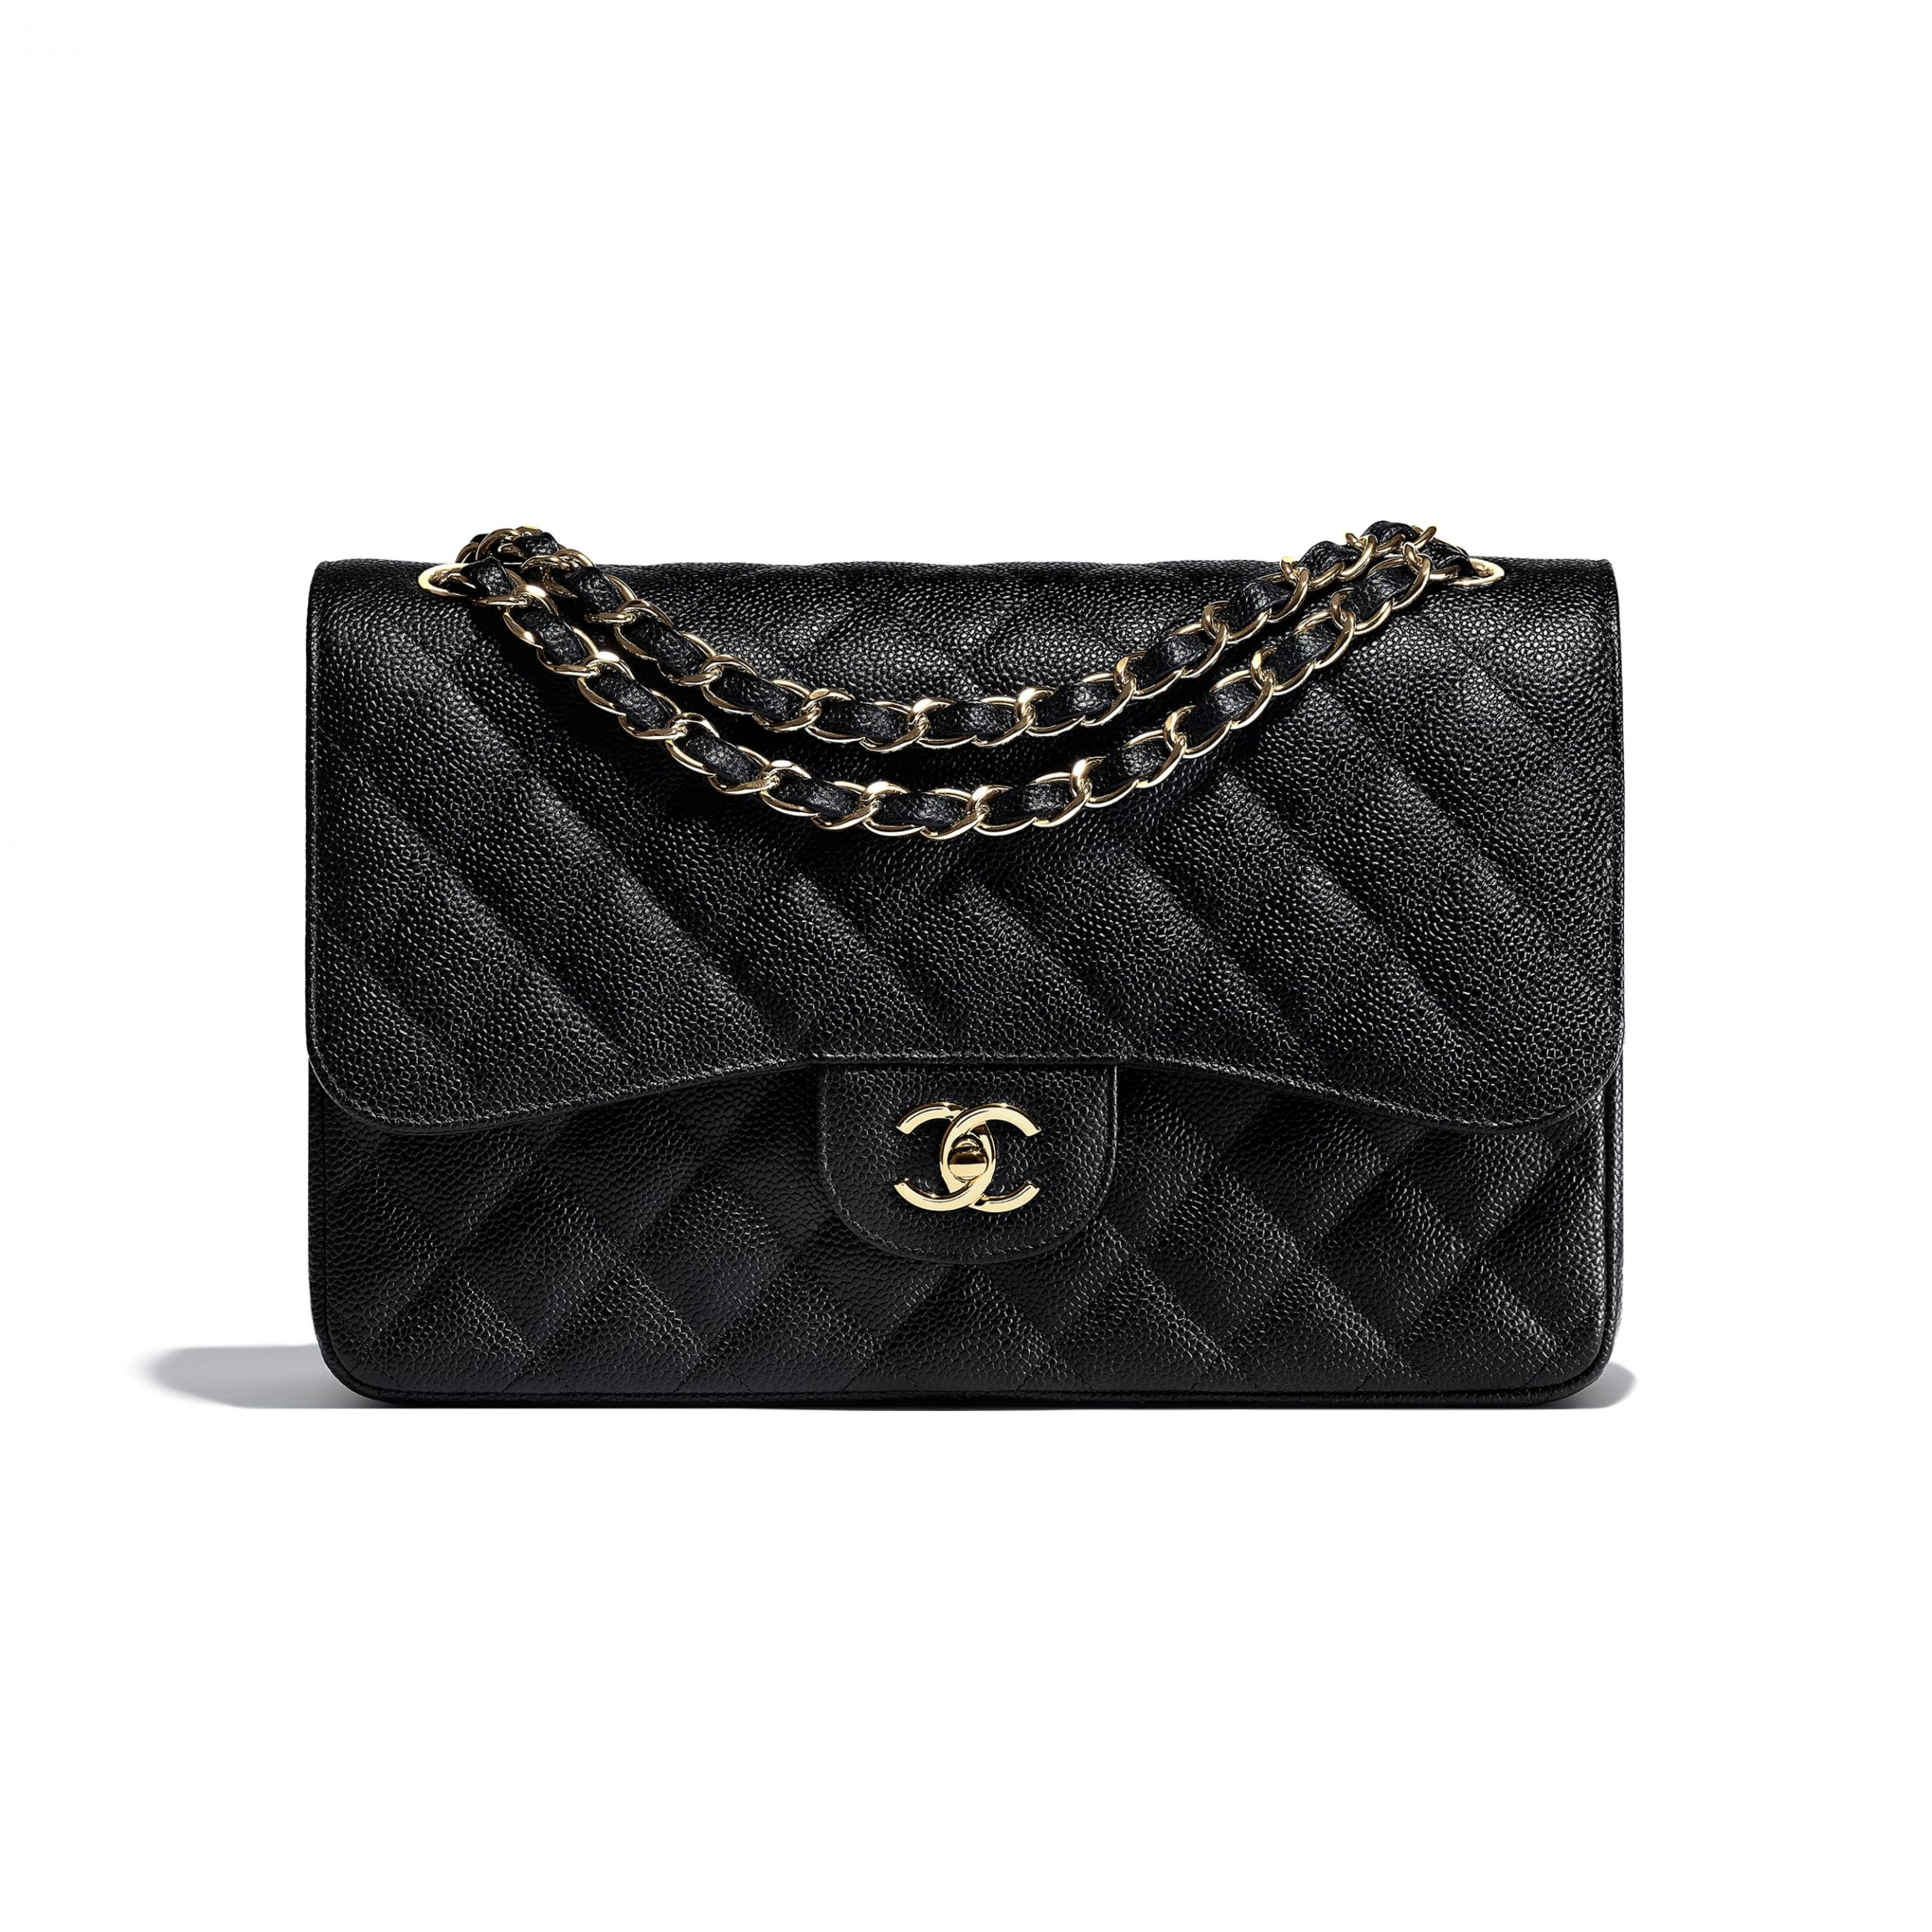 large-classic-handbag-black-grained-calfskin-gold-tone-metal-grained-calfskin-gold-tone-metal-packshot-default-a58600y01864c3906-8812351422494.jpg